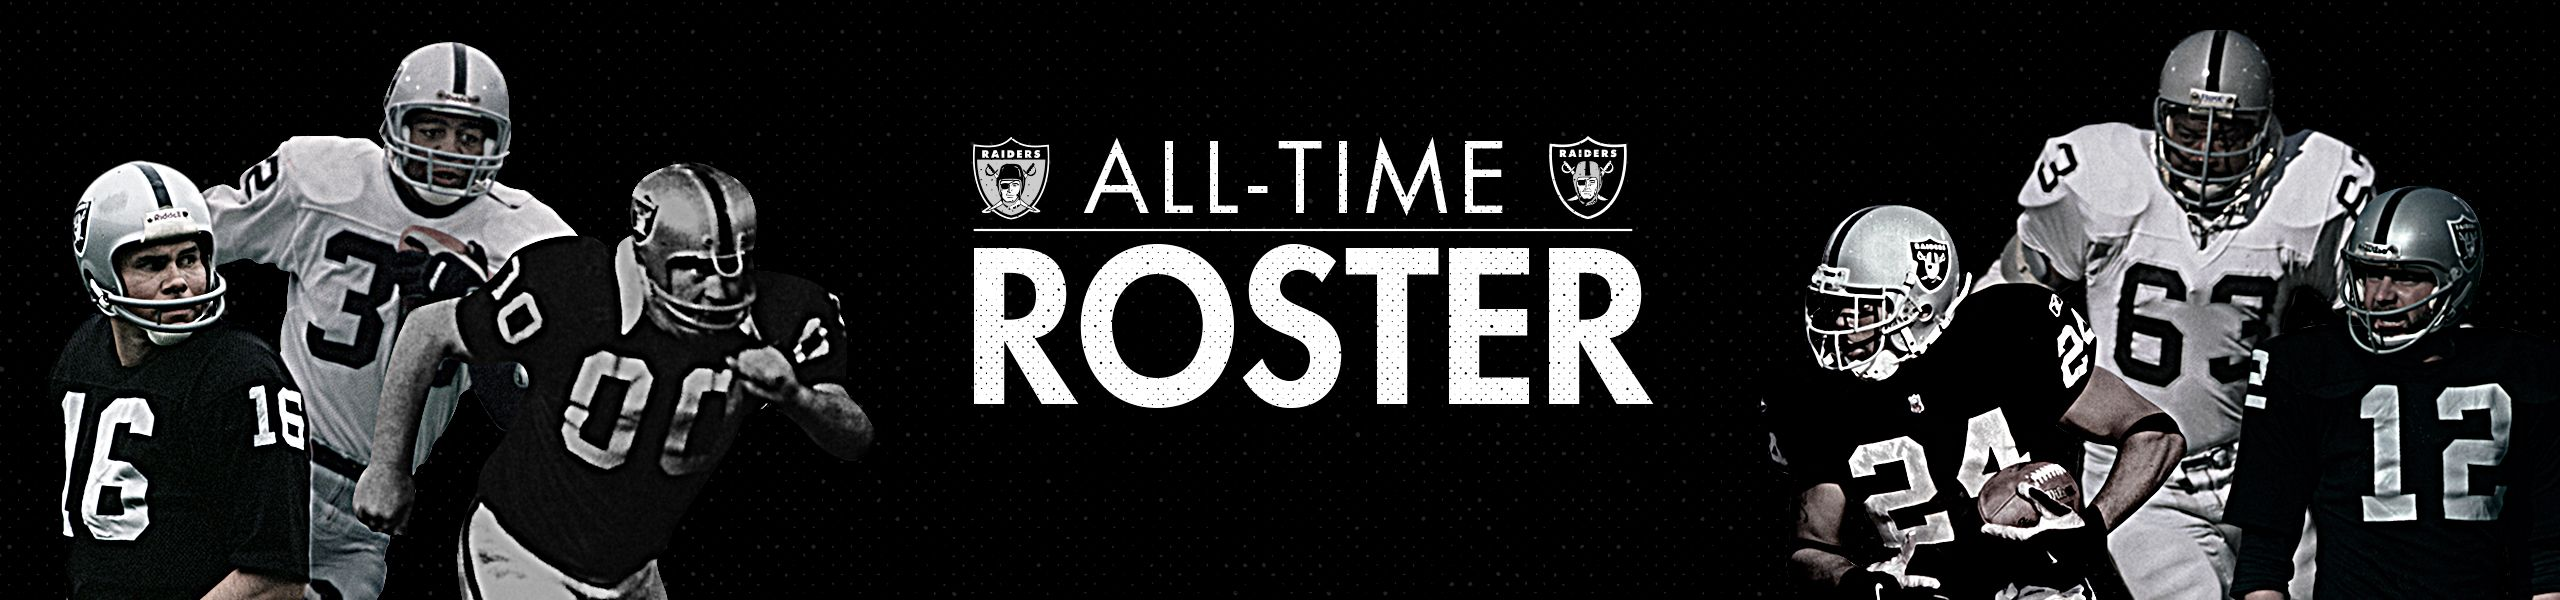 Learn more about the Raiders All-Time Roster